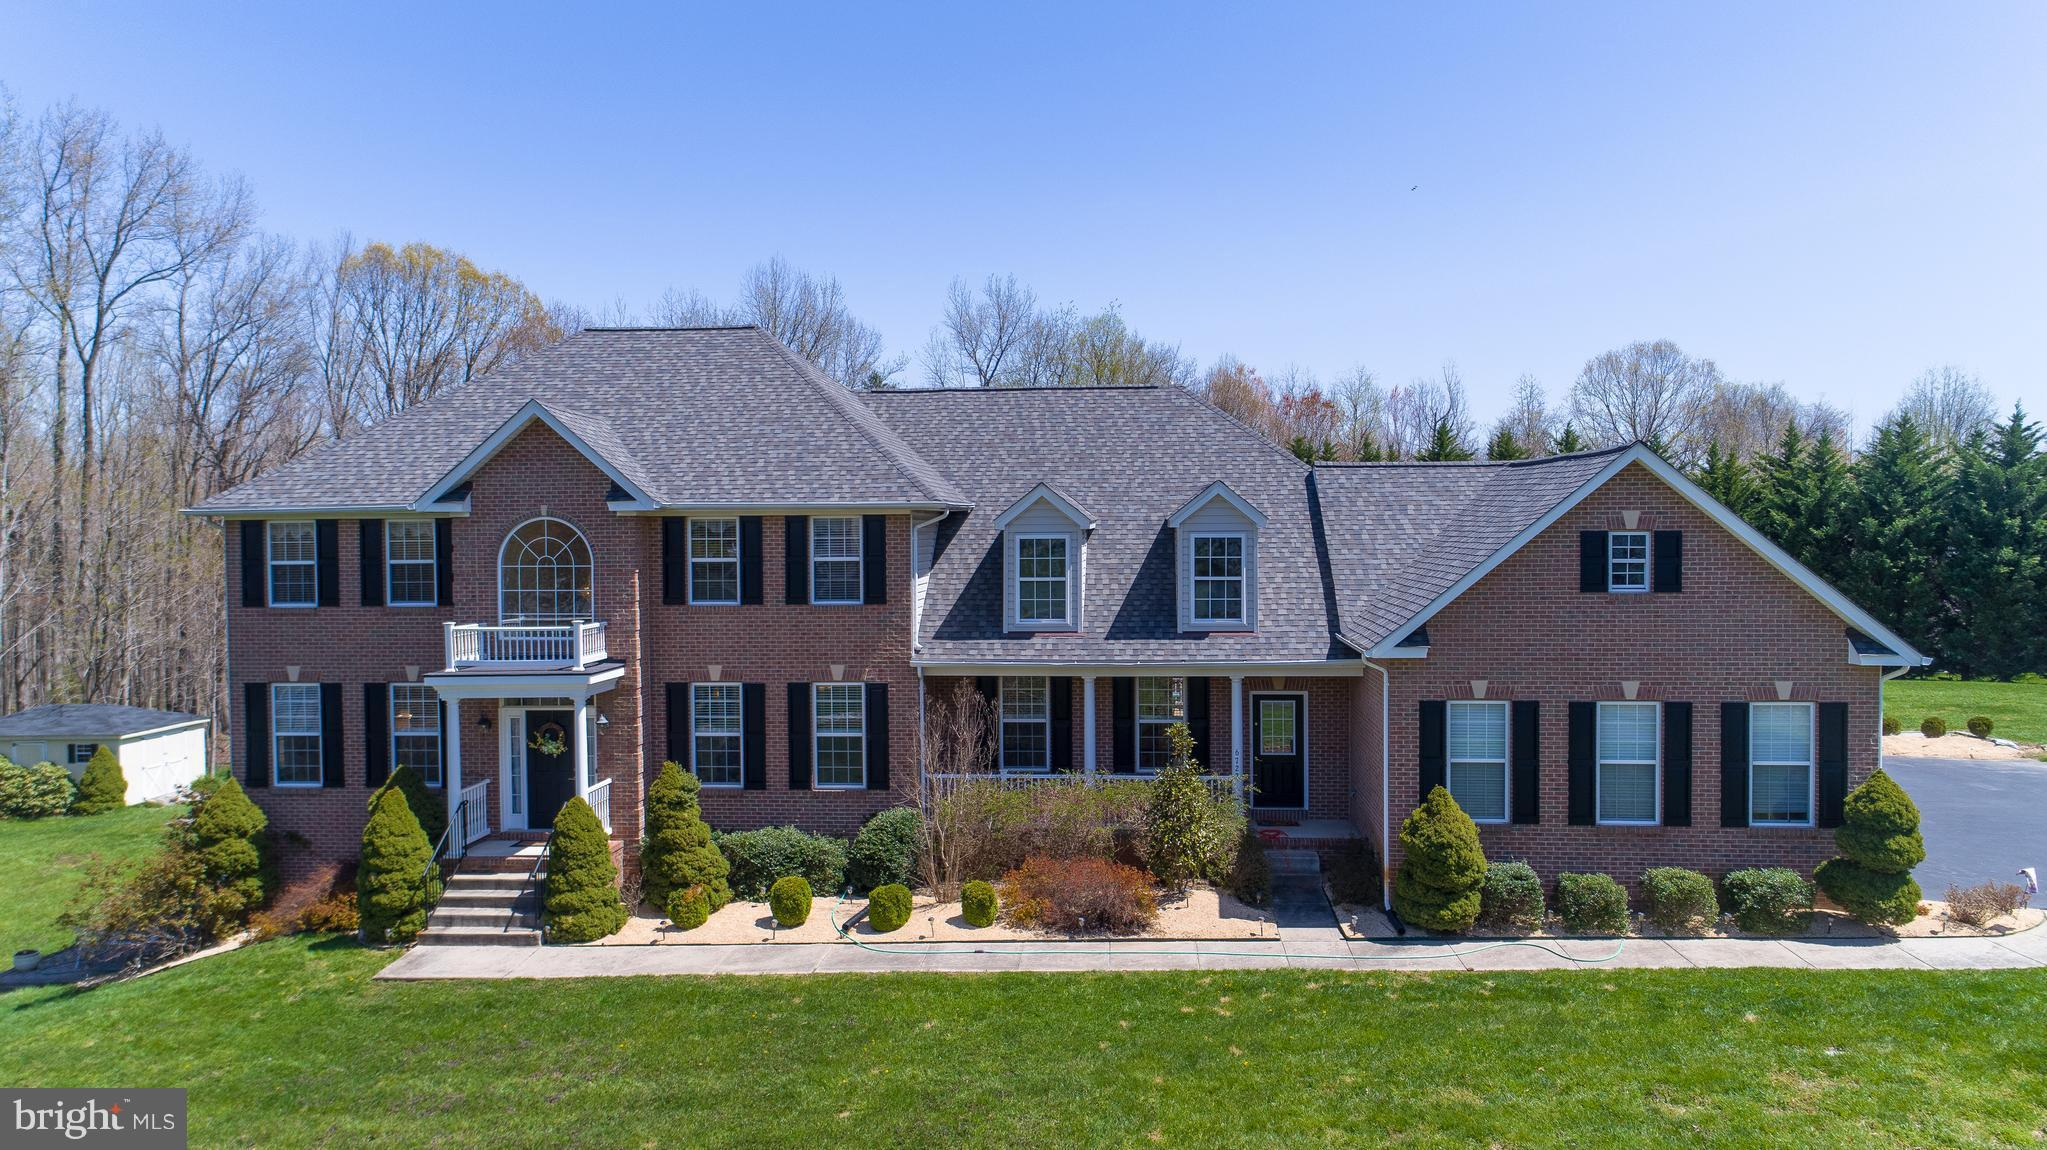 OPEN HOUSE SUNDAY 10/21 FROM 1-4! PRICE REDUCED!  GORGEOUS LAKE JAMESON HOME ON 3+ PRIVATE ACRES! KI